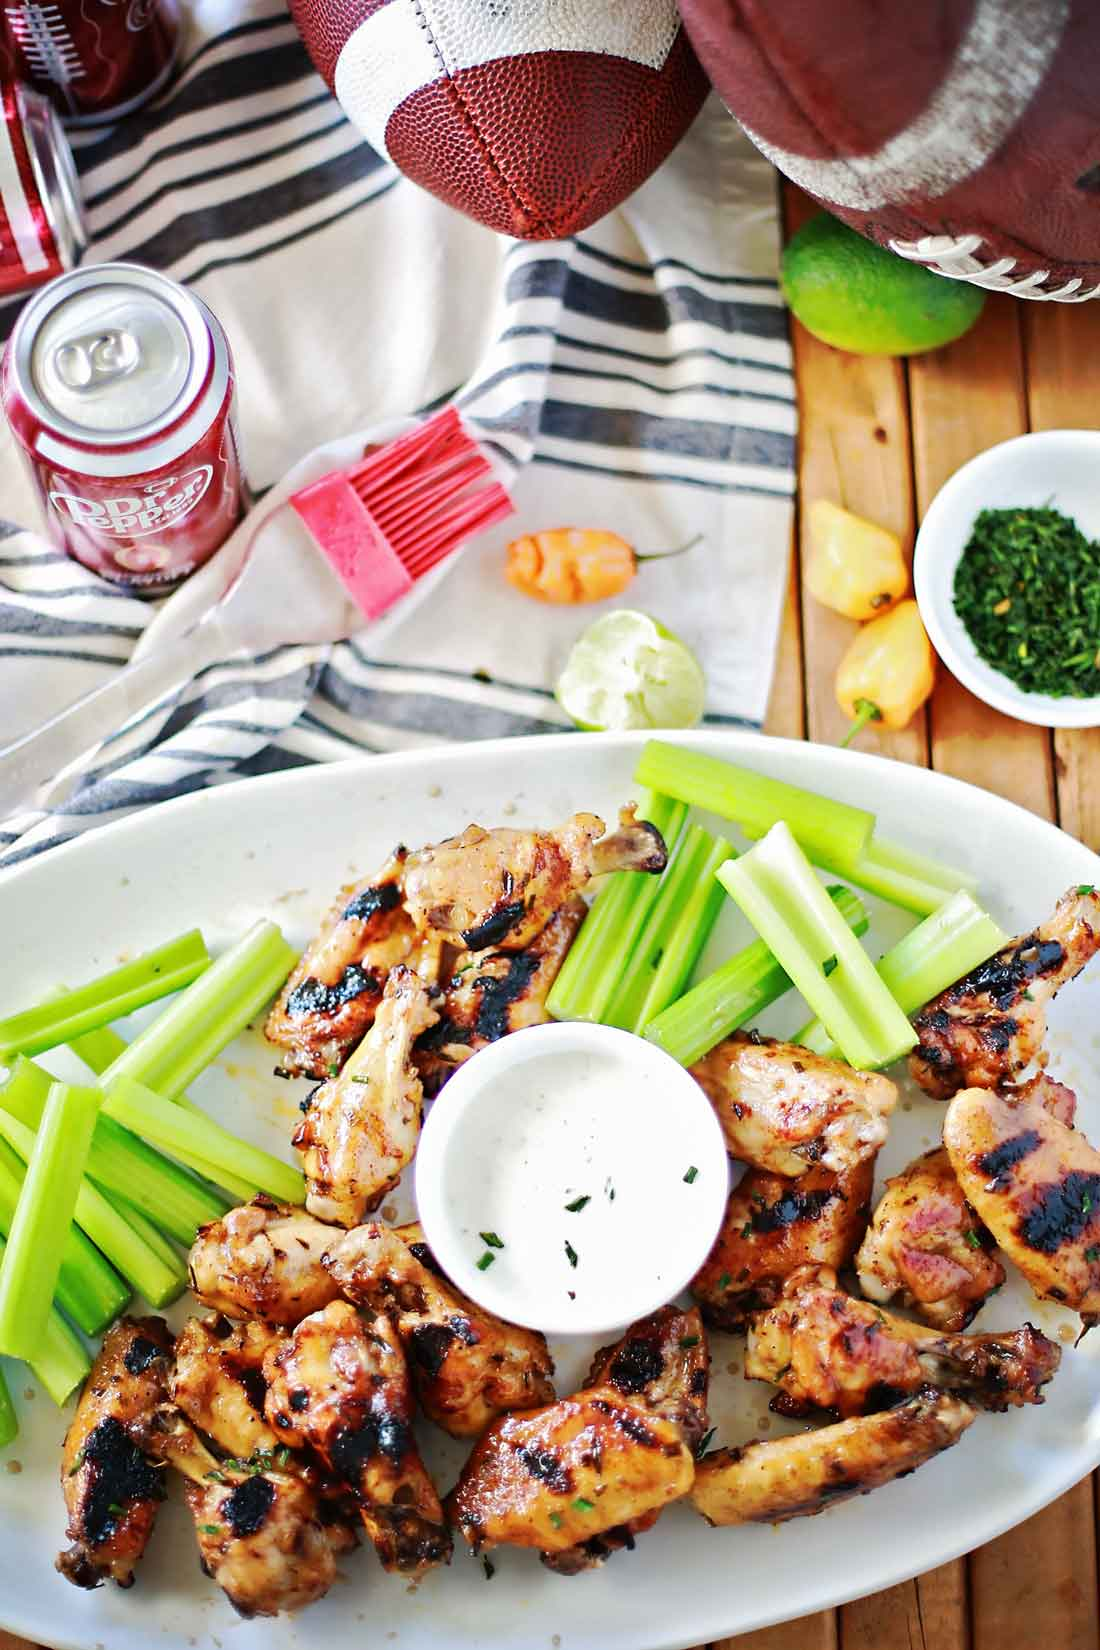 Dr Pepper Habanero Chicken Wings recipe by Flirting with Flavor